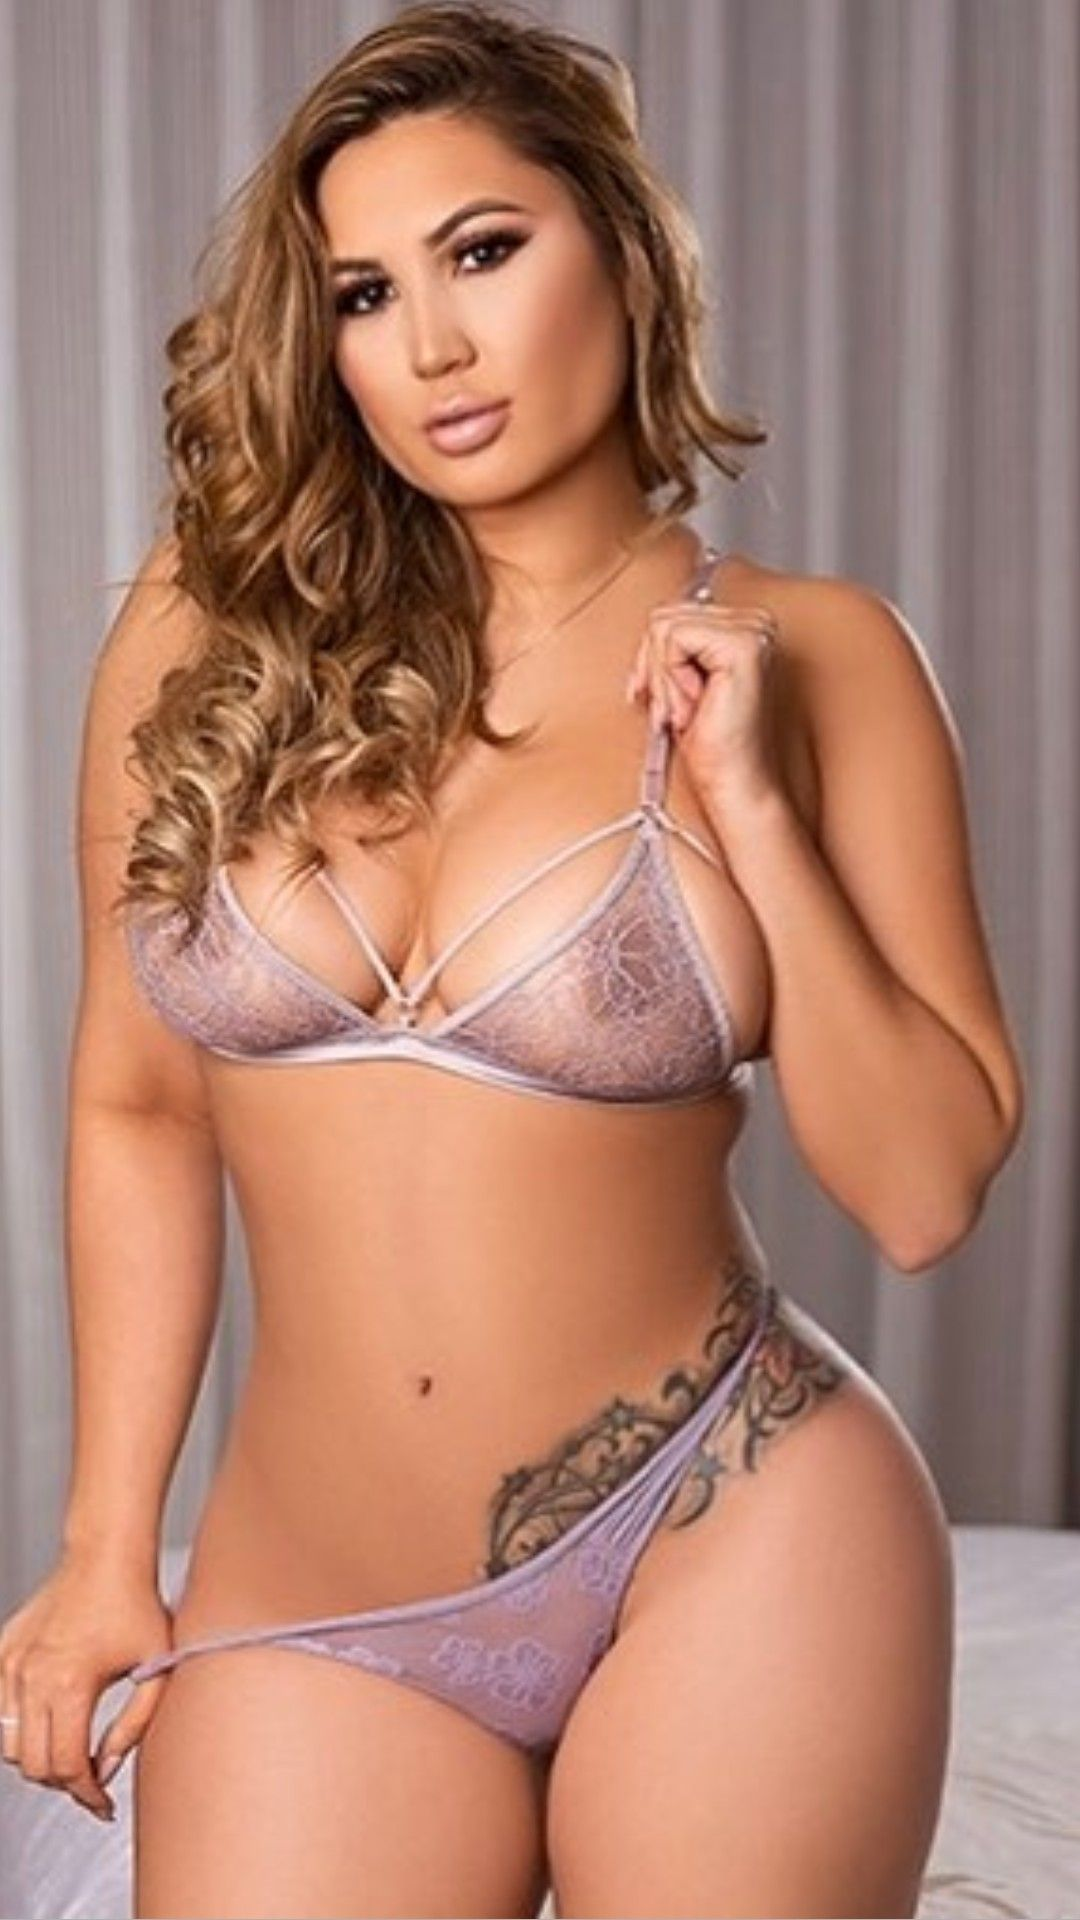 Sorry, Tanya love model hot matchless message